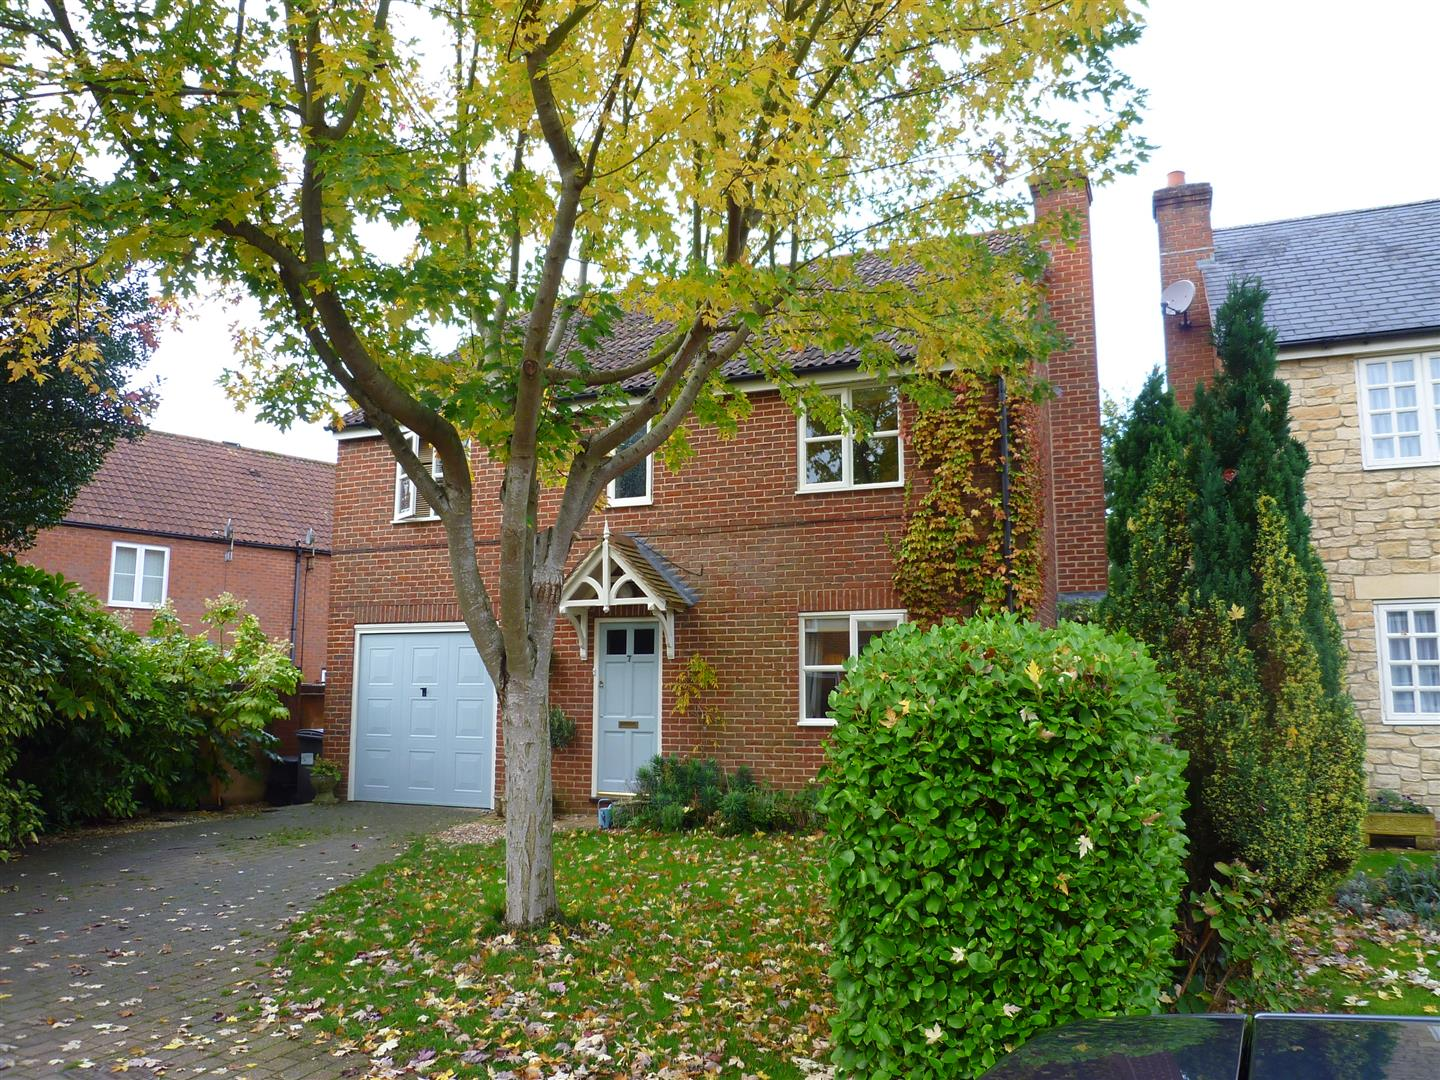 4 Bedrooms Detached House for sale in The Mews, Newport, Warminster